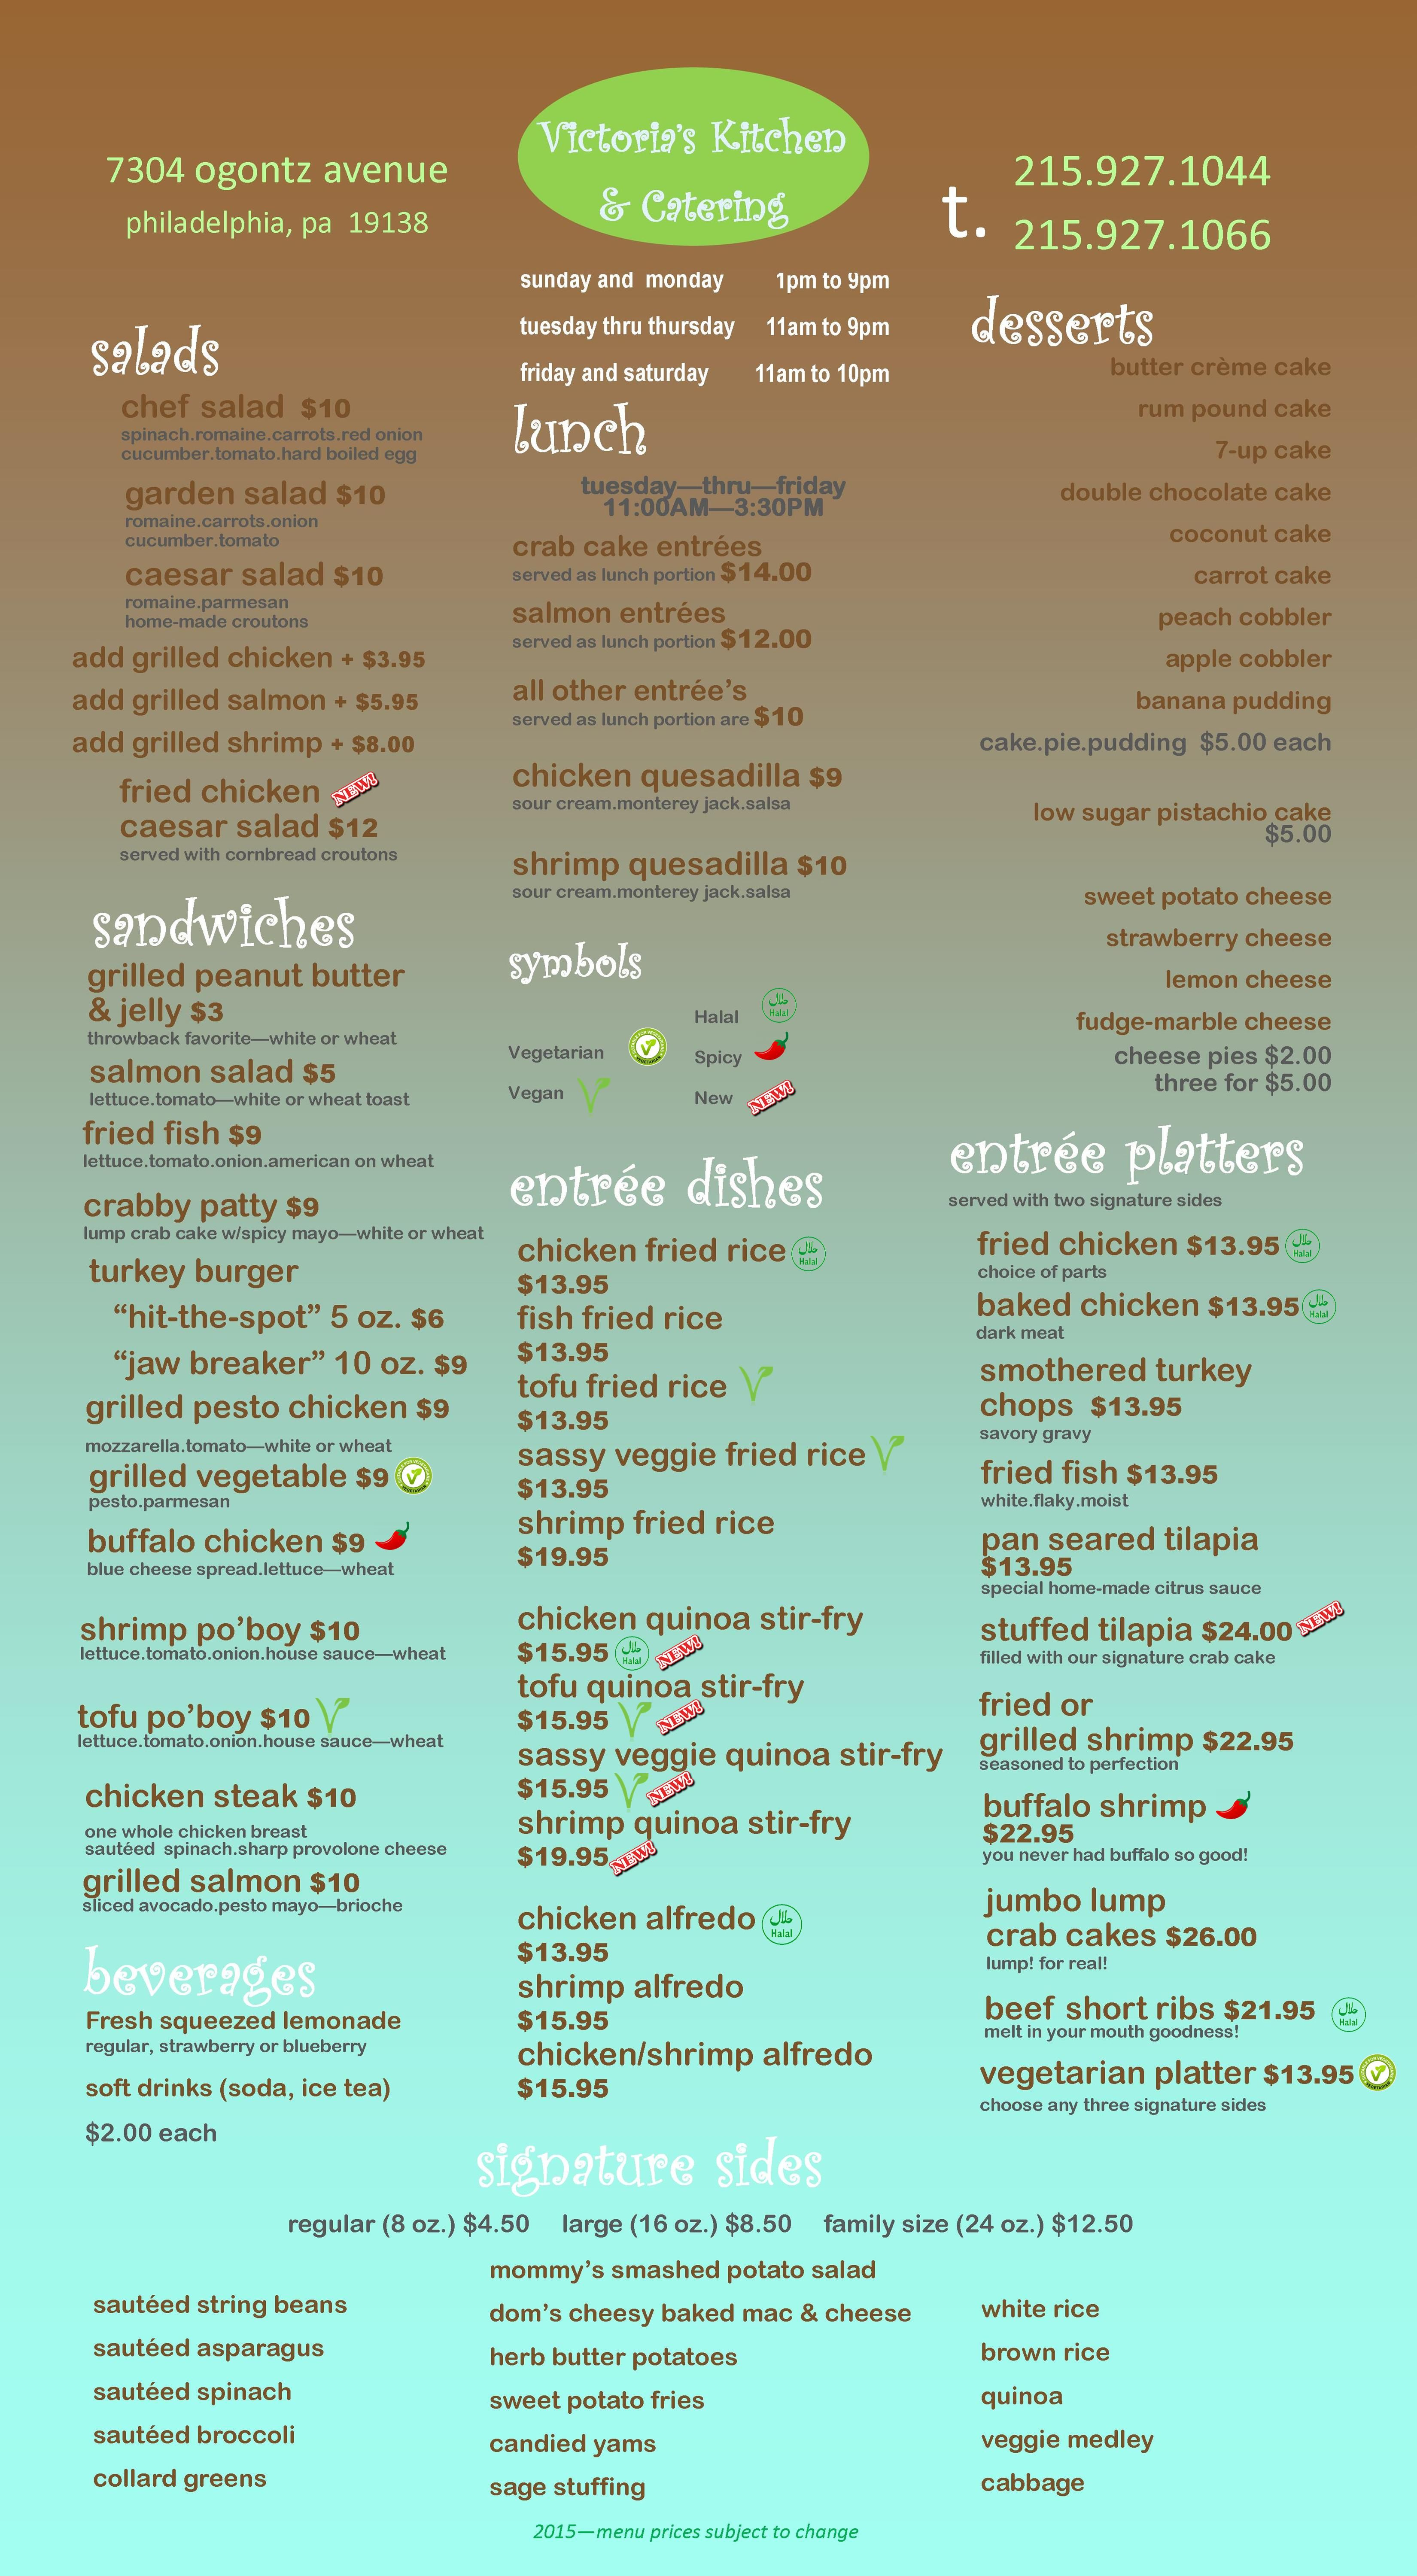 Pin by Victoria\'s Kitchen on MENU at Victoria\'s Kitchen | Pinterest ...